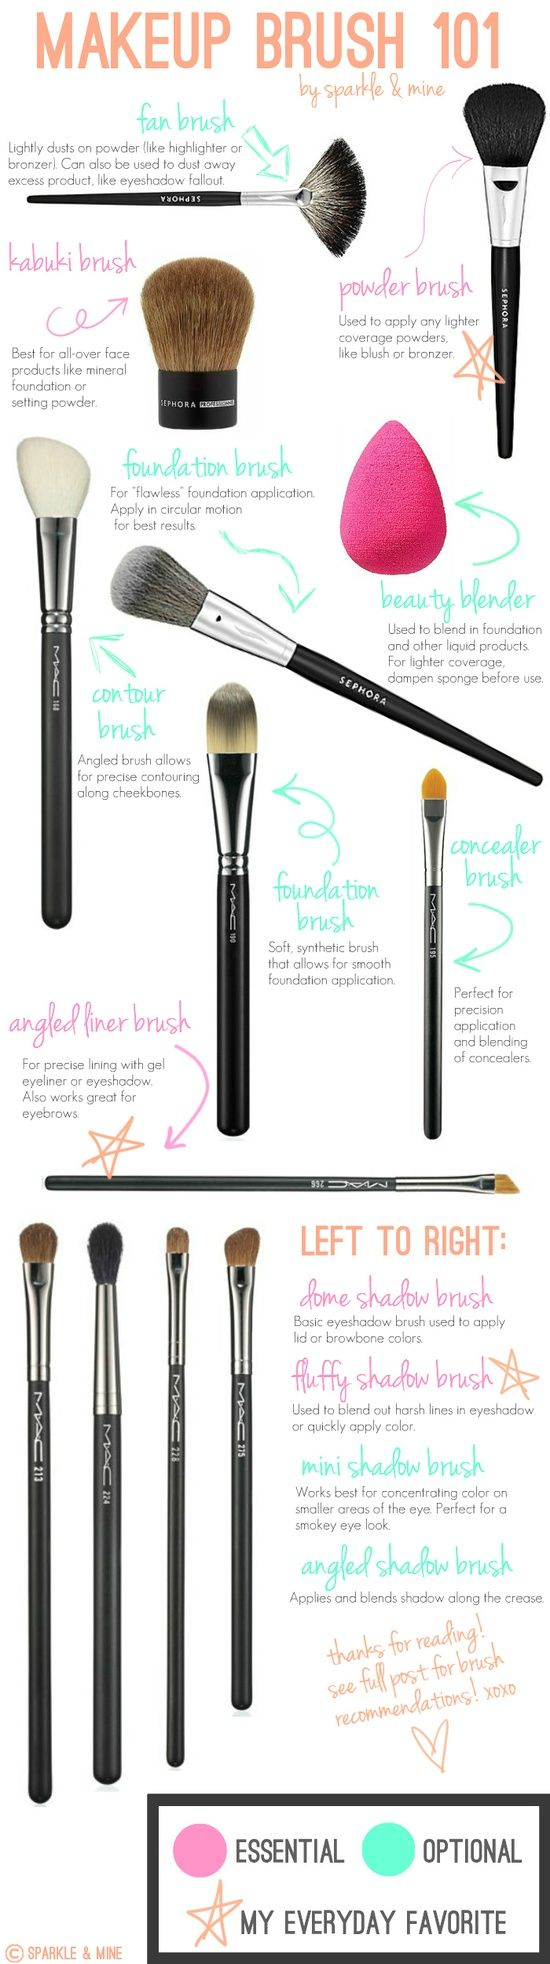 Makeup brushes just get this bottom four brushes and the beauty blender thee are essentials